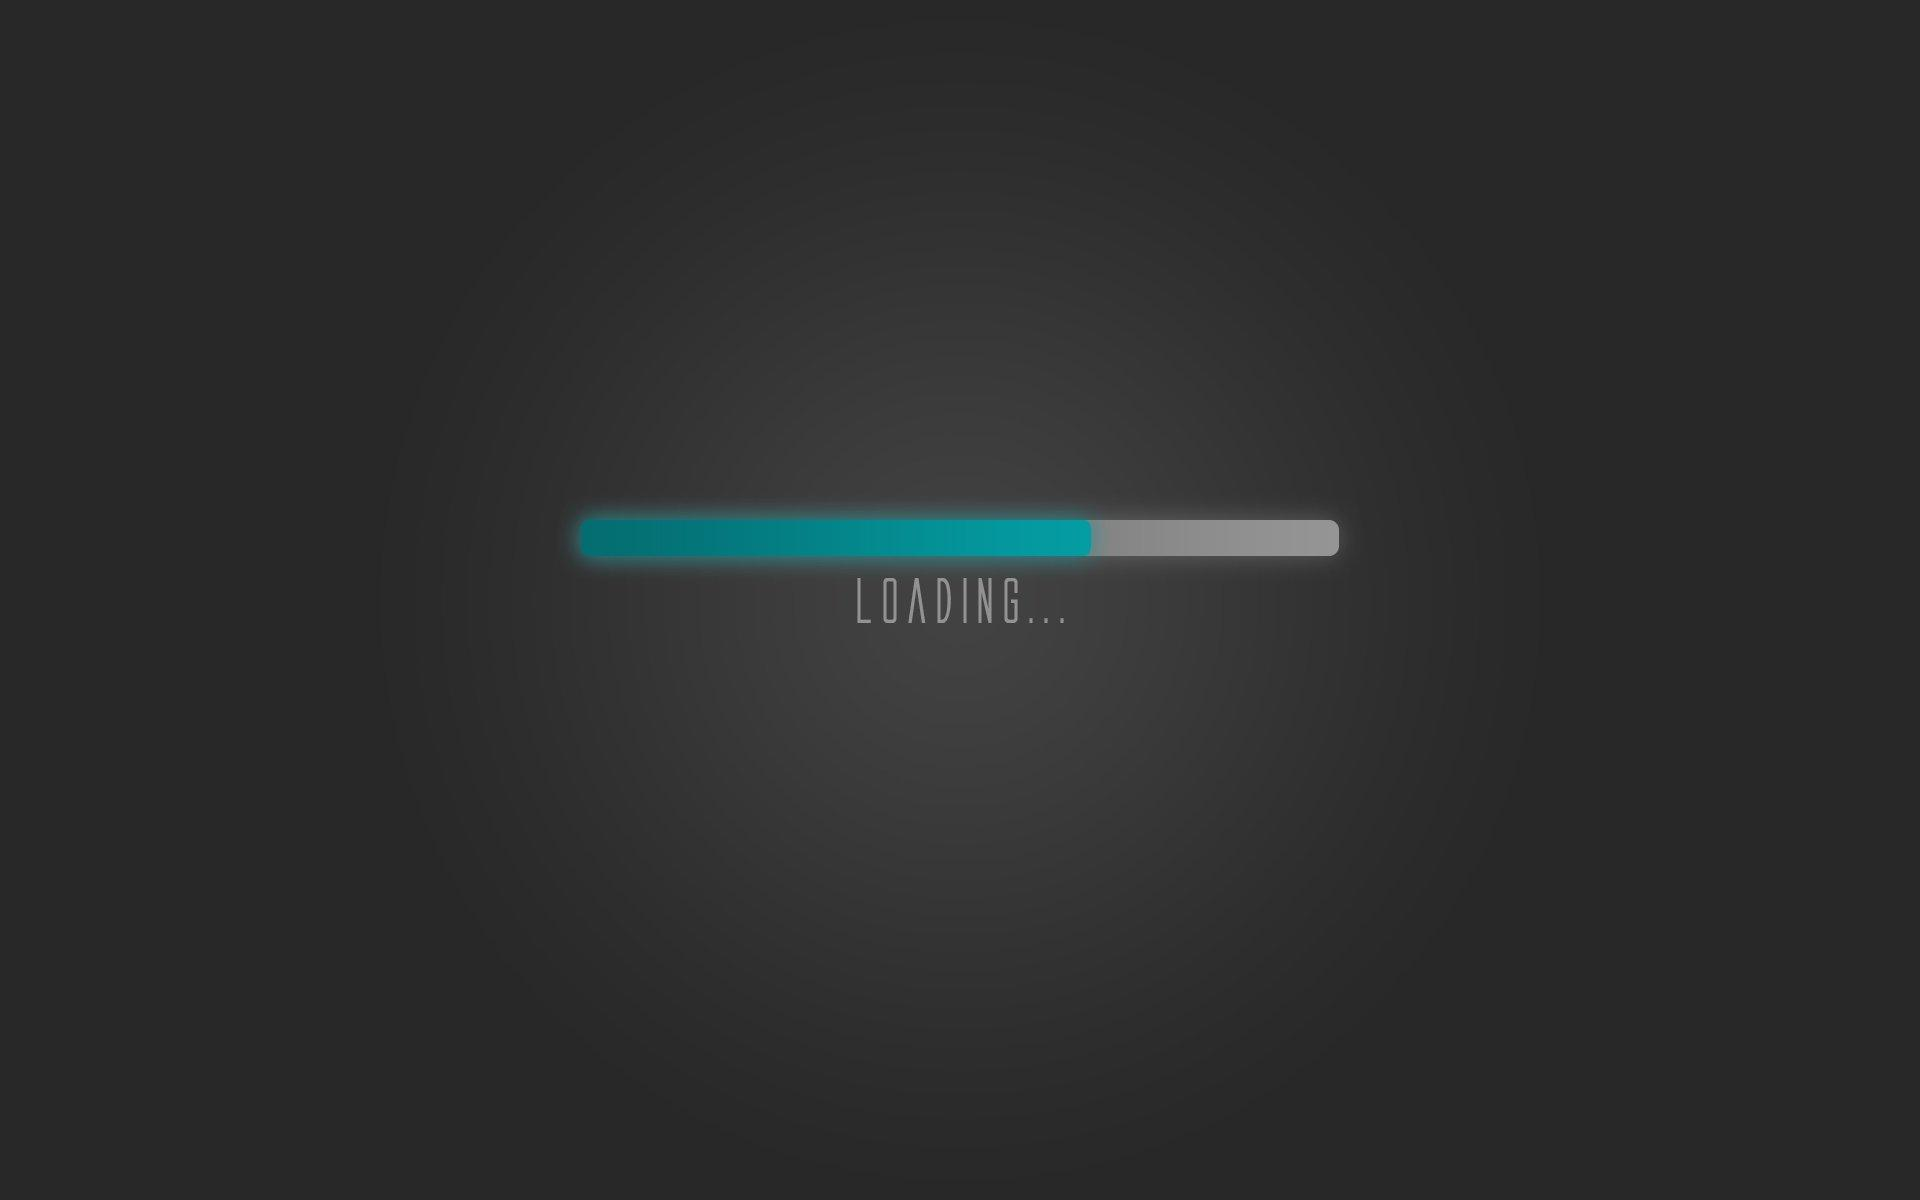 Loading Wallpaper – A Great Addition To Your Computer